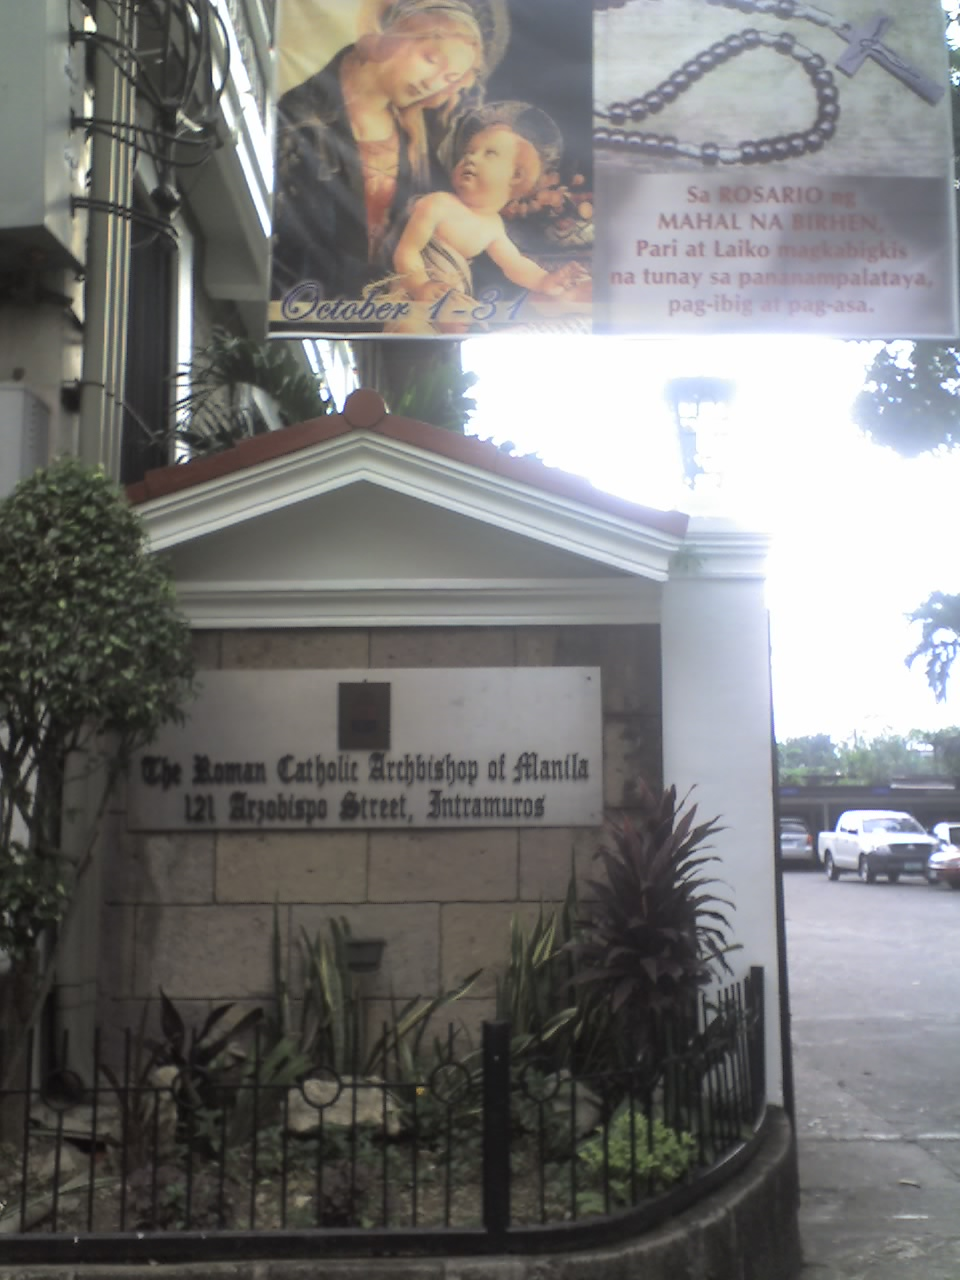 THE ROMAN CATHOLIC ARCHBISHOP OF MANILA